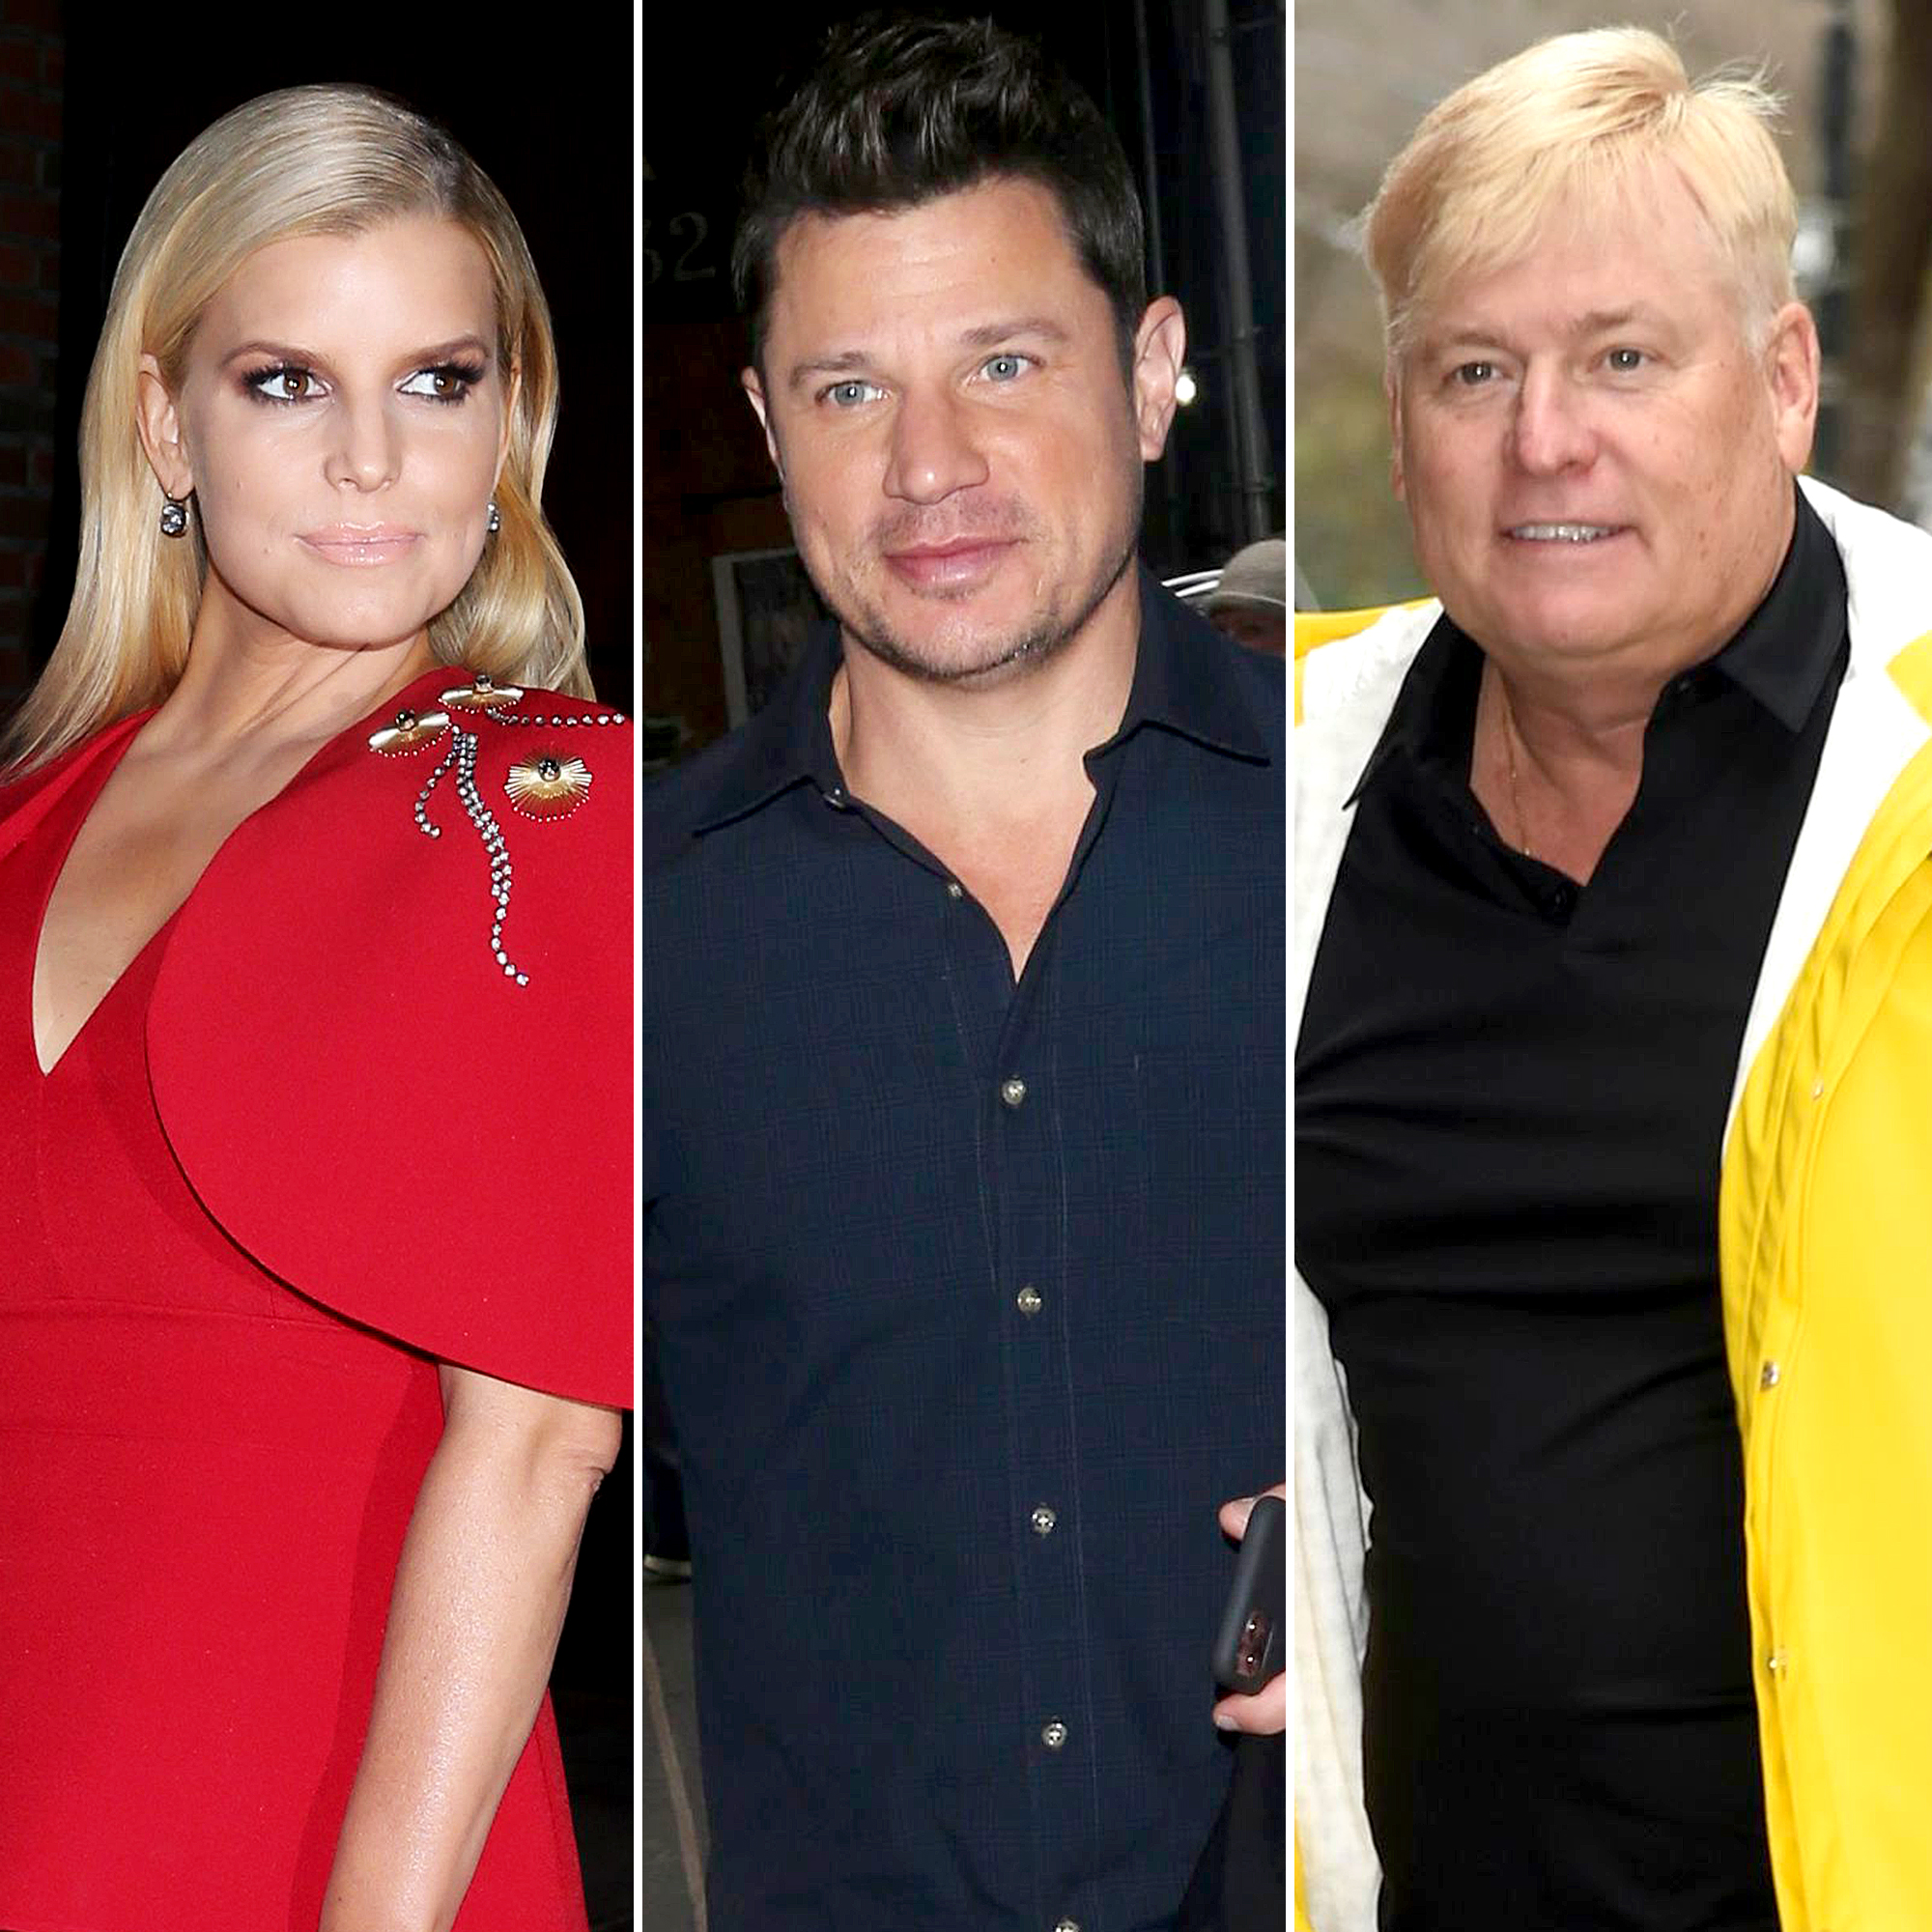 Jessica-Simpson-Was-Very-Pissed-When-Bitter-Nick-Lachey-Brought-Up-Dad-Joe